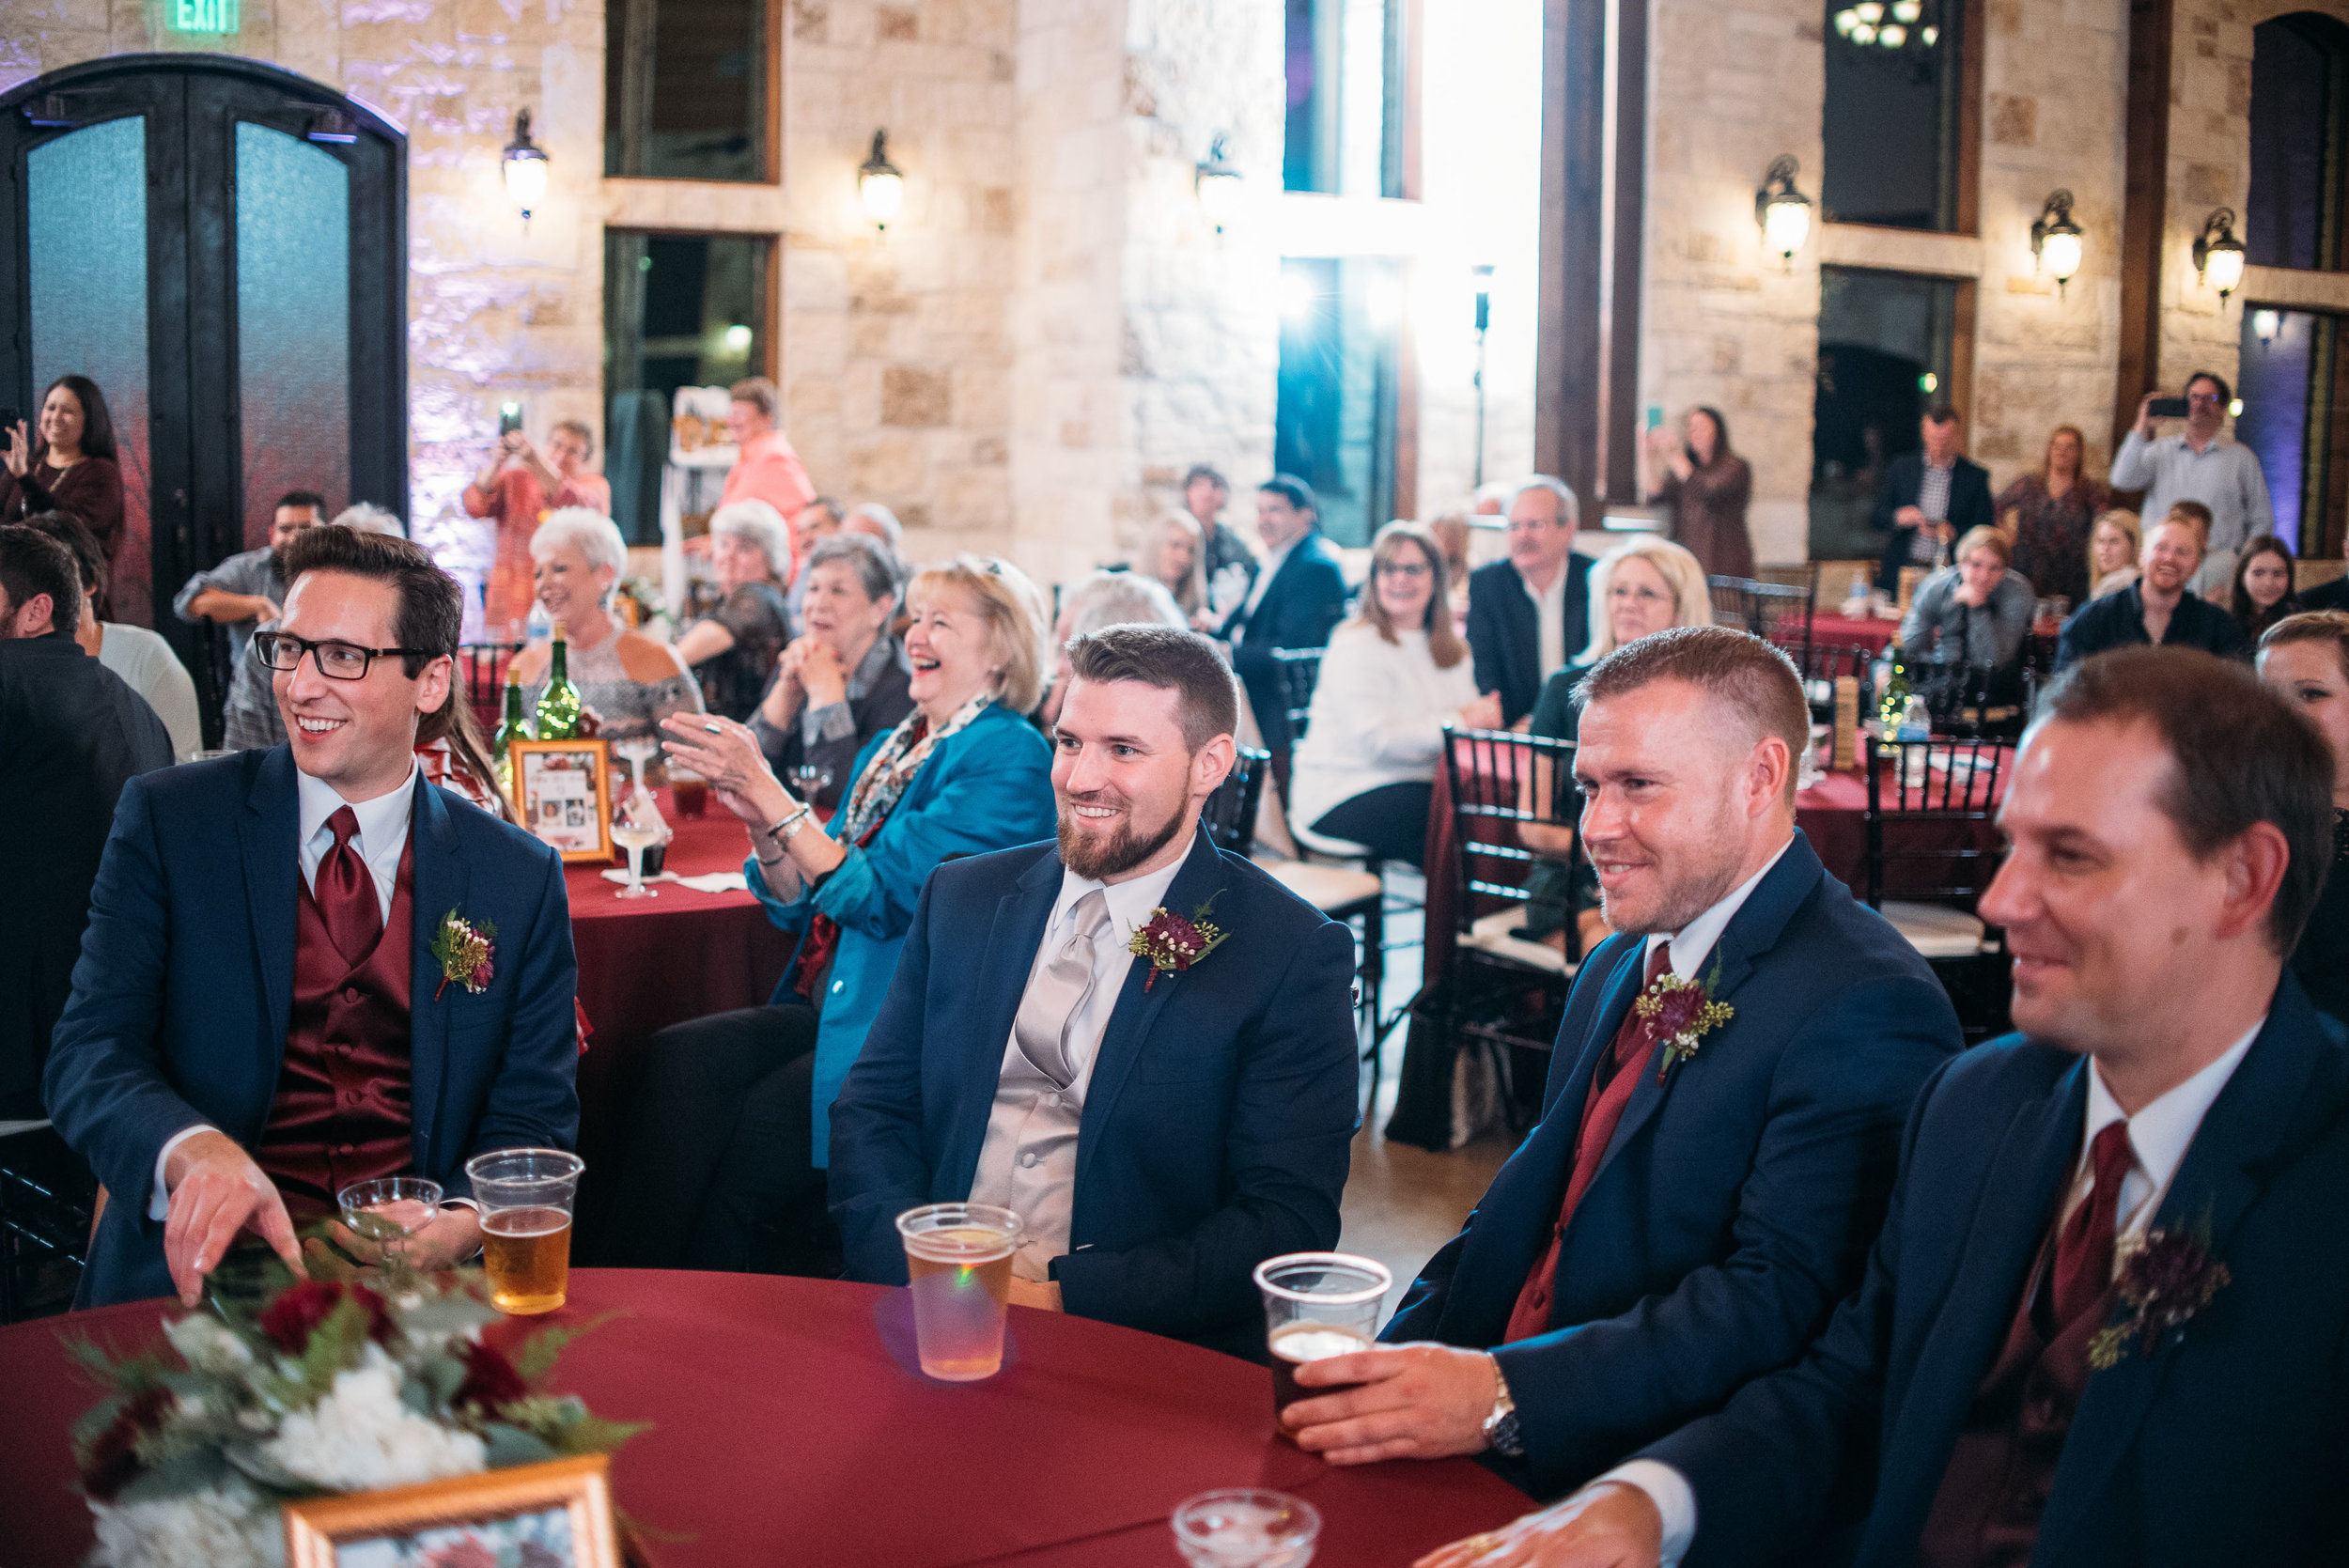 BrownstoneReserve_CollegeStation_WeddingPhotographer_61.jpg